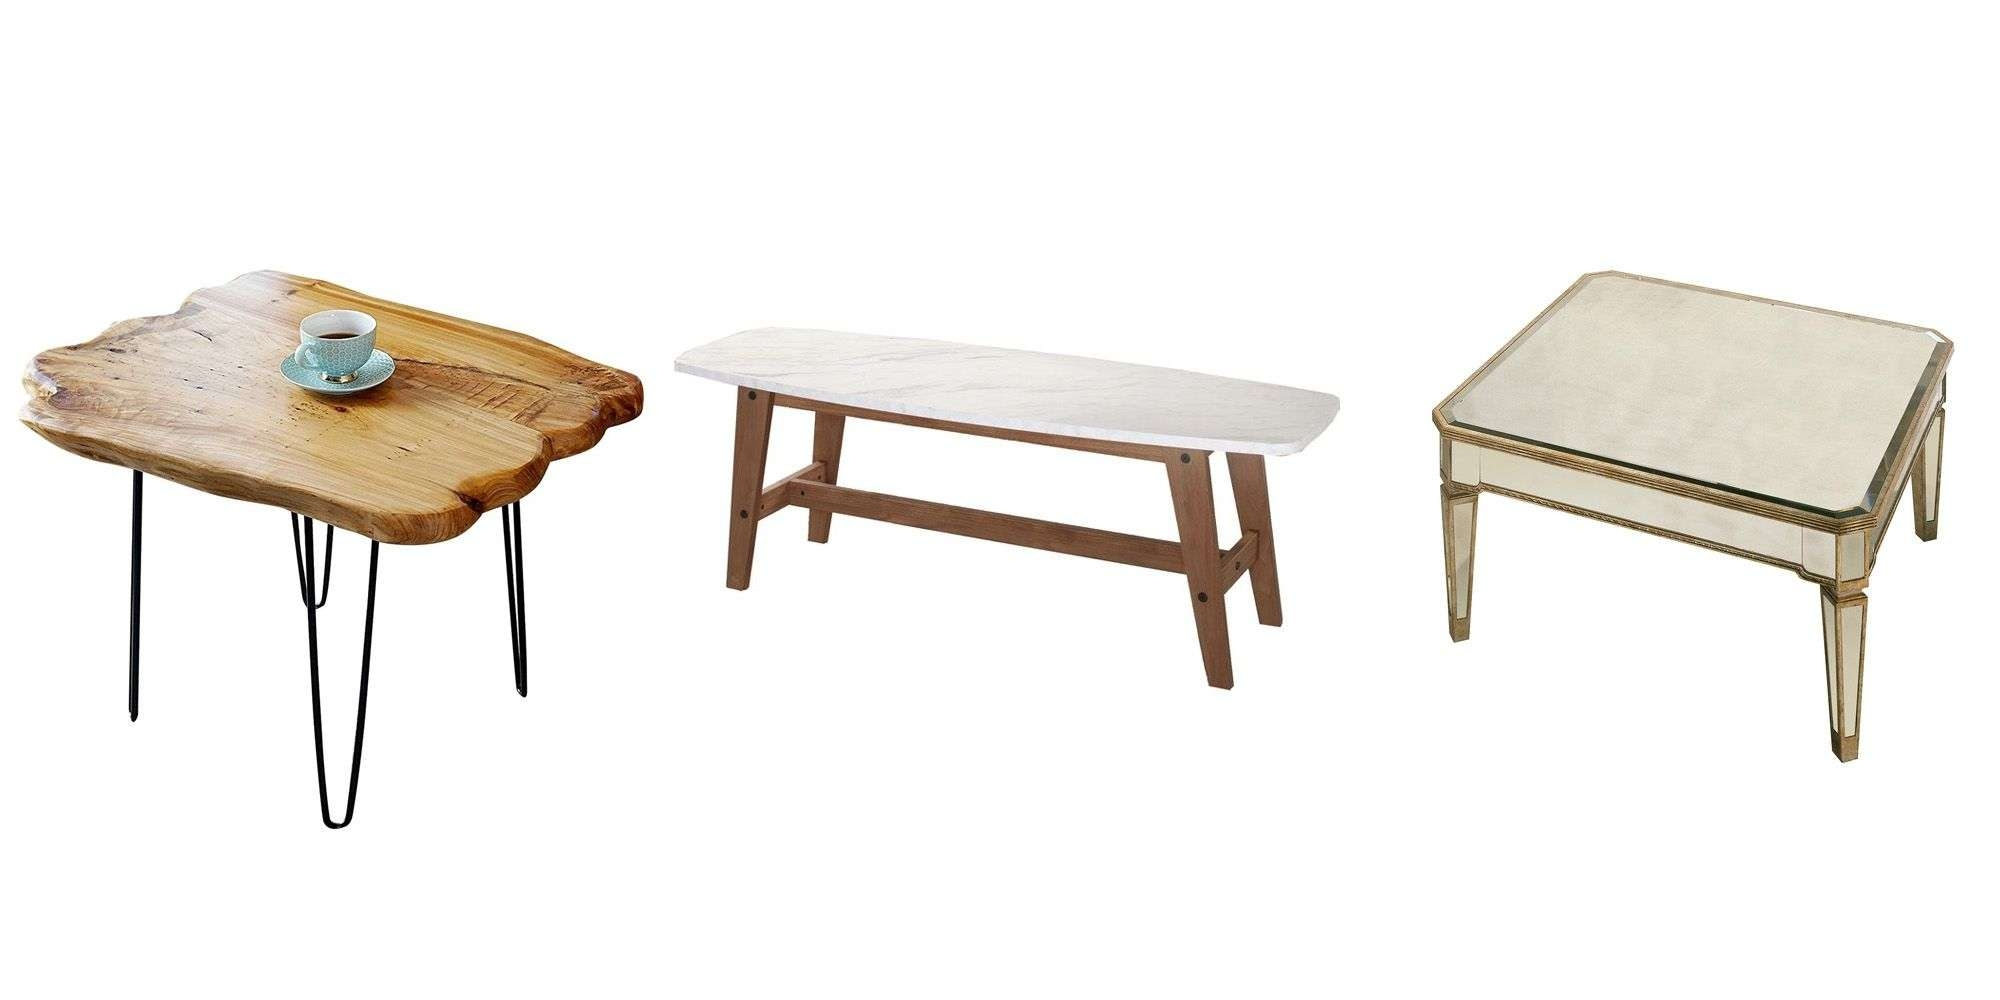 20 Best Small Coffee Tables – Furniture For Small Spaces Intended For Most Popular Small Coffee Tables (View 1 of 20)